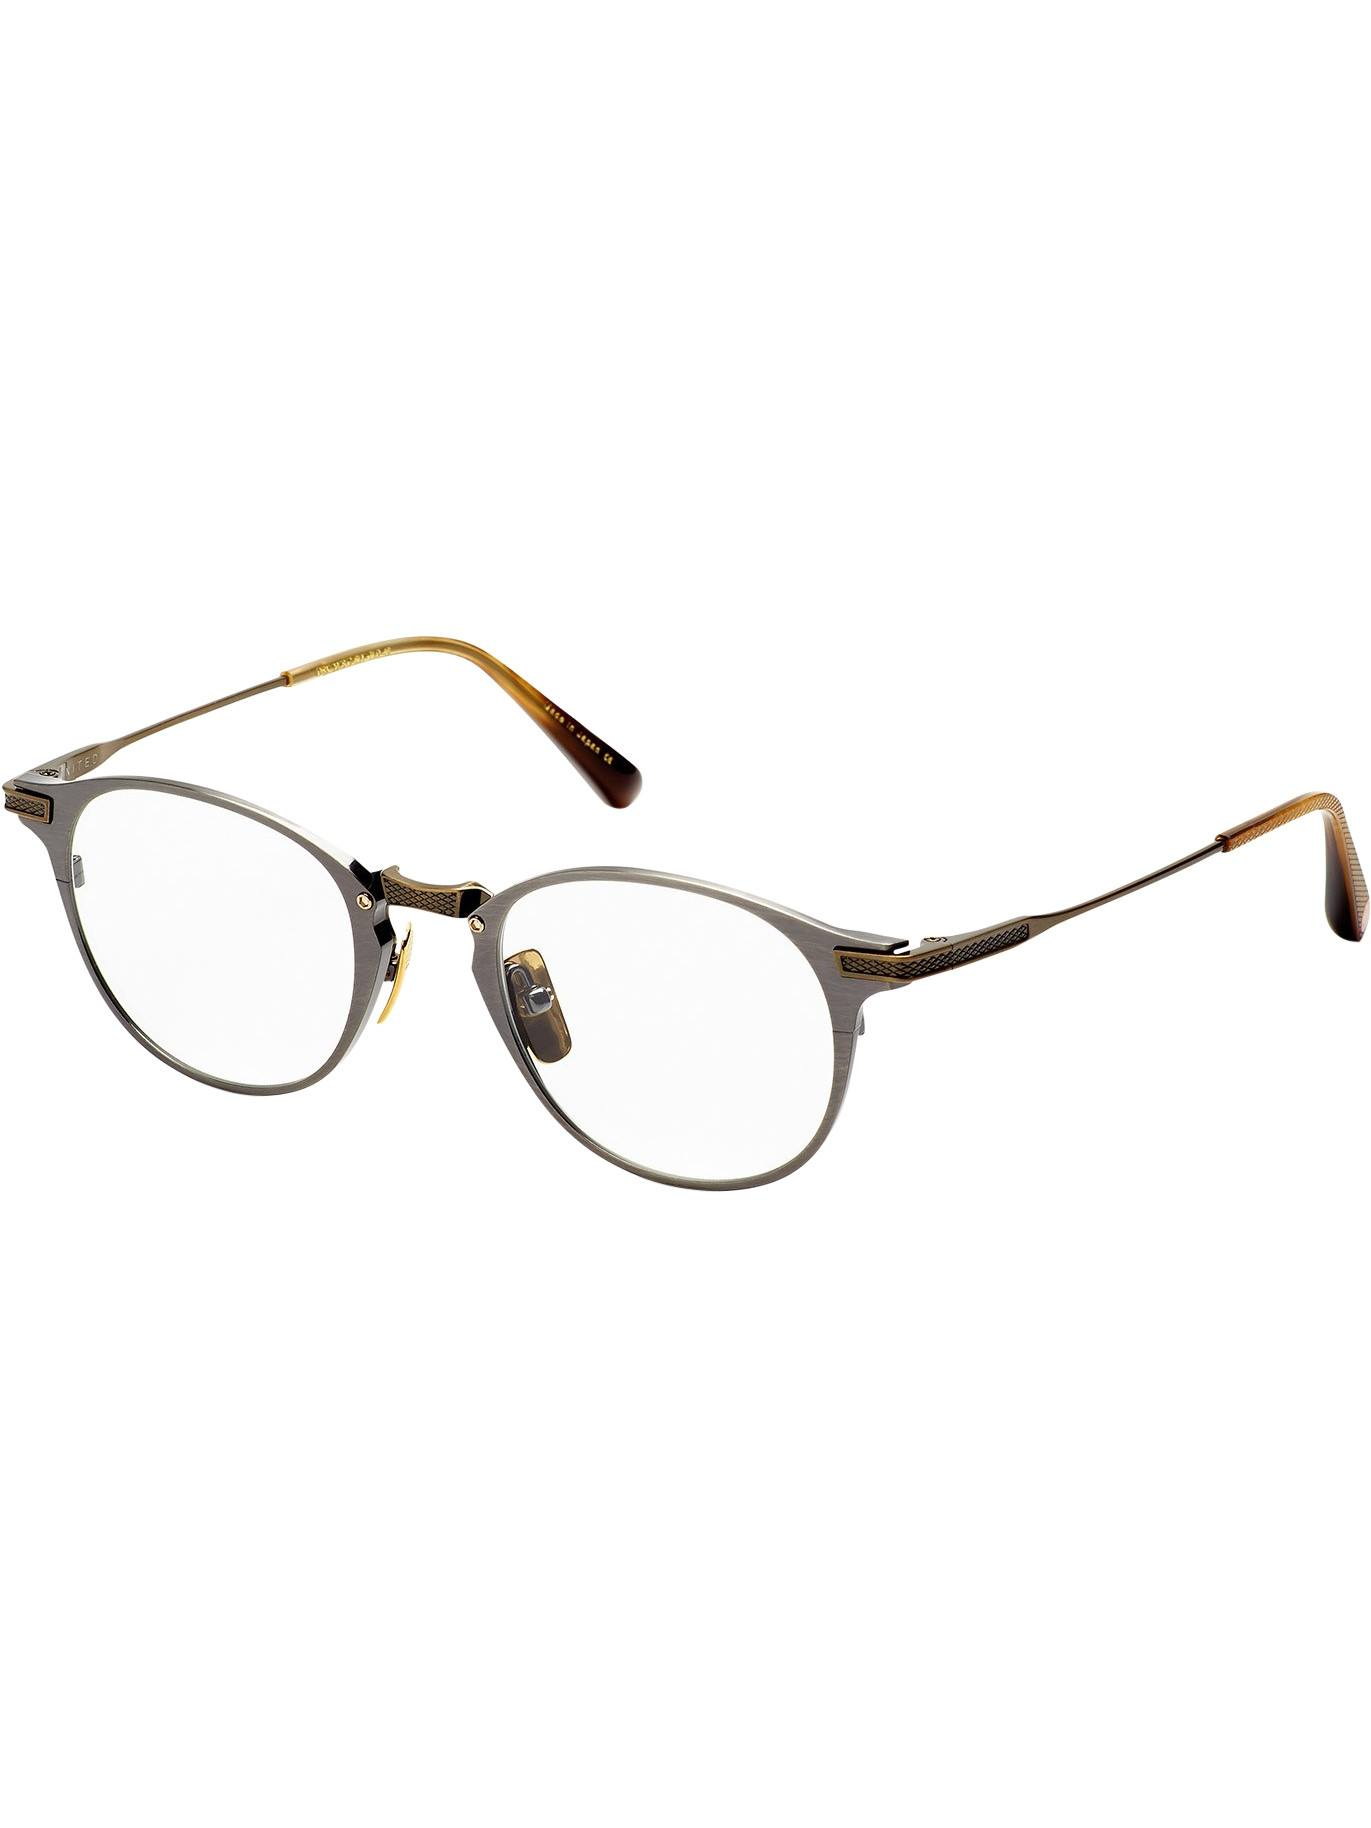 Optical Frame - Dita United DRX-2078C Glasses